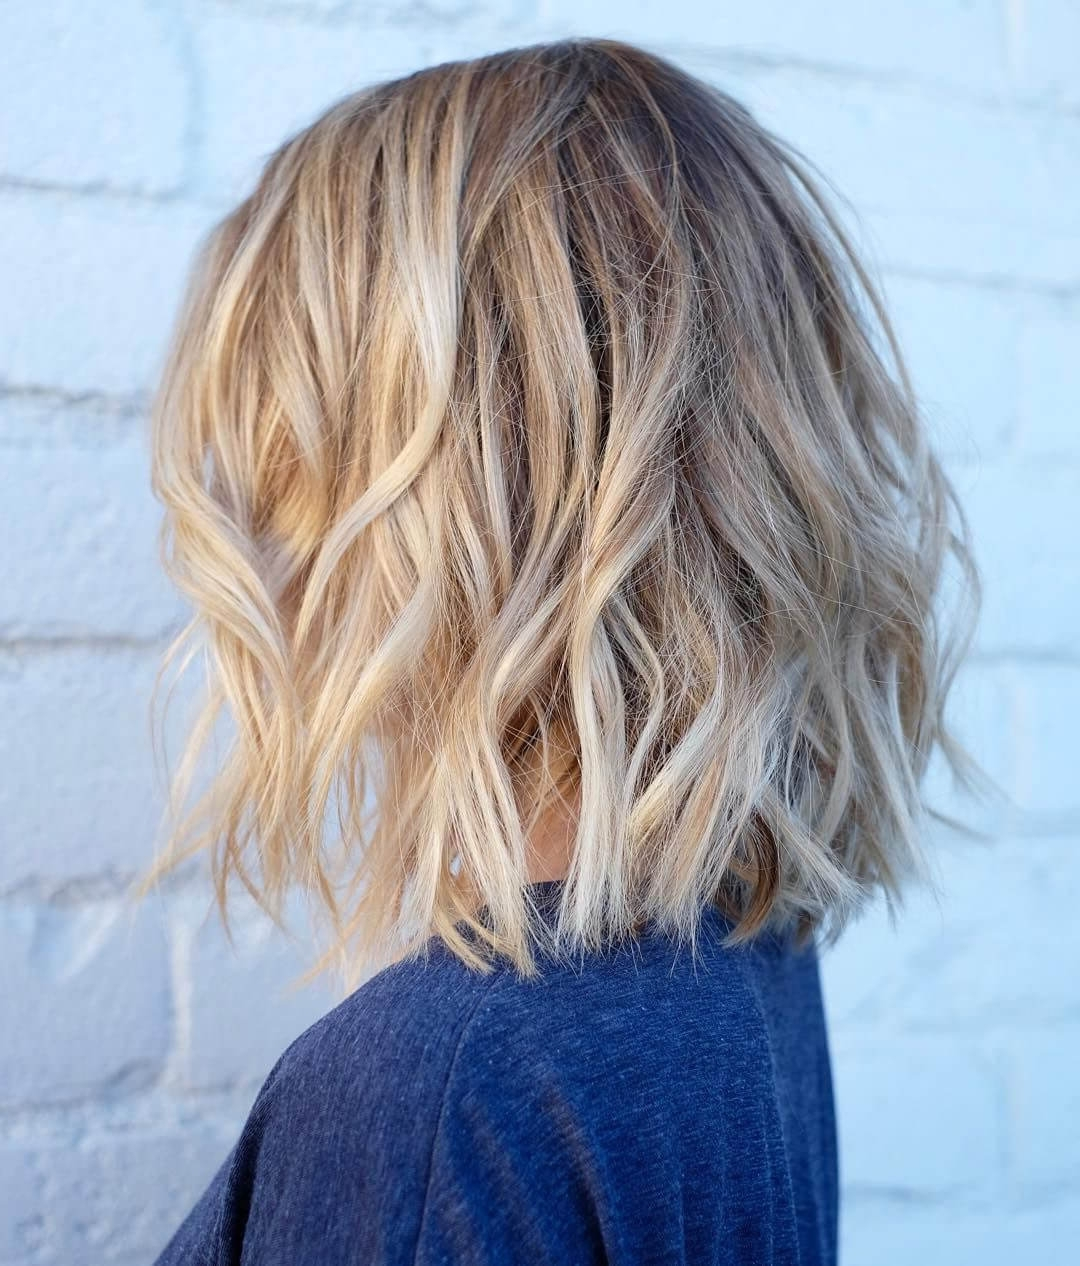 50 Fresh Short Blonde Hair Ideas To Update Your Style In 2018 For Well Known Voluminous Platinum And Purple Curls Blonde Hairstyles (View 3 of 20)